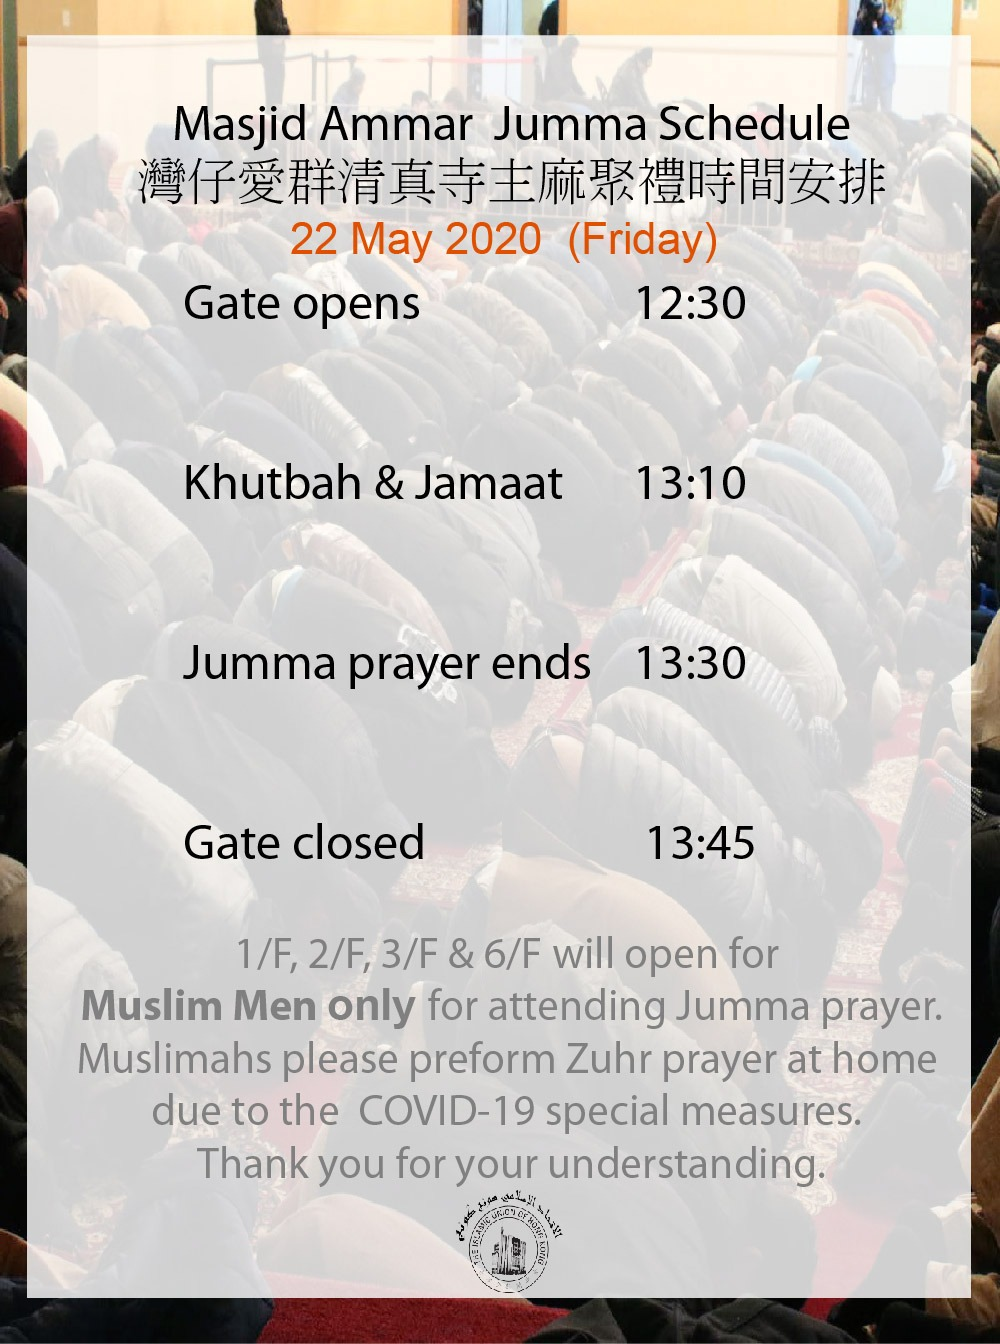 Masjid Ammar Jumma Schedule (22 May 2020)